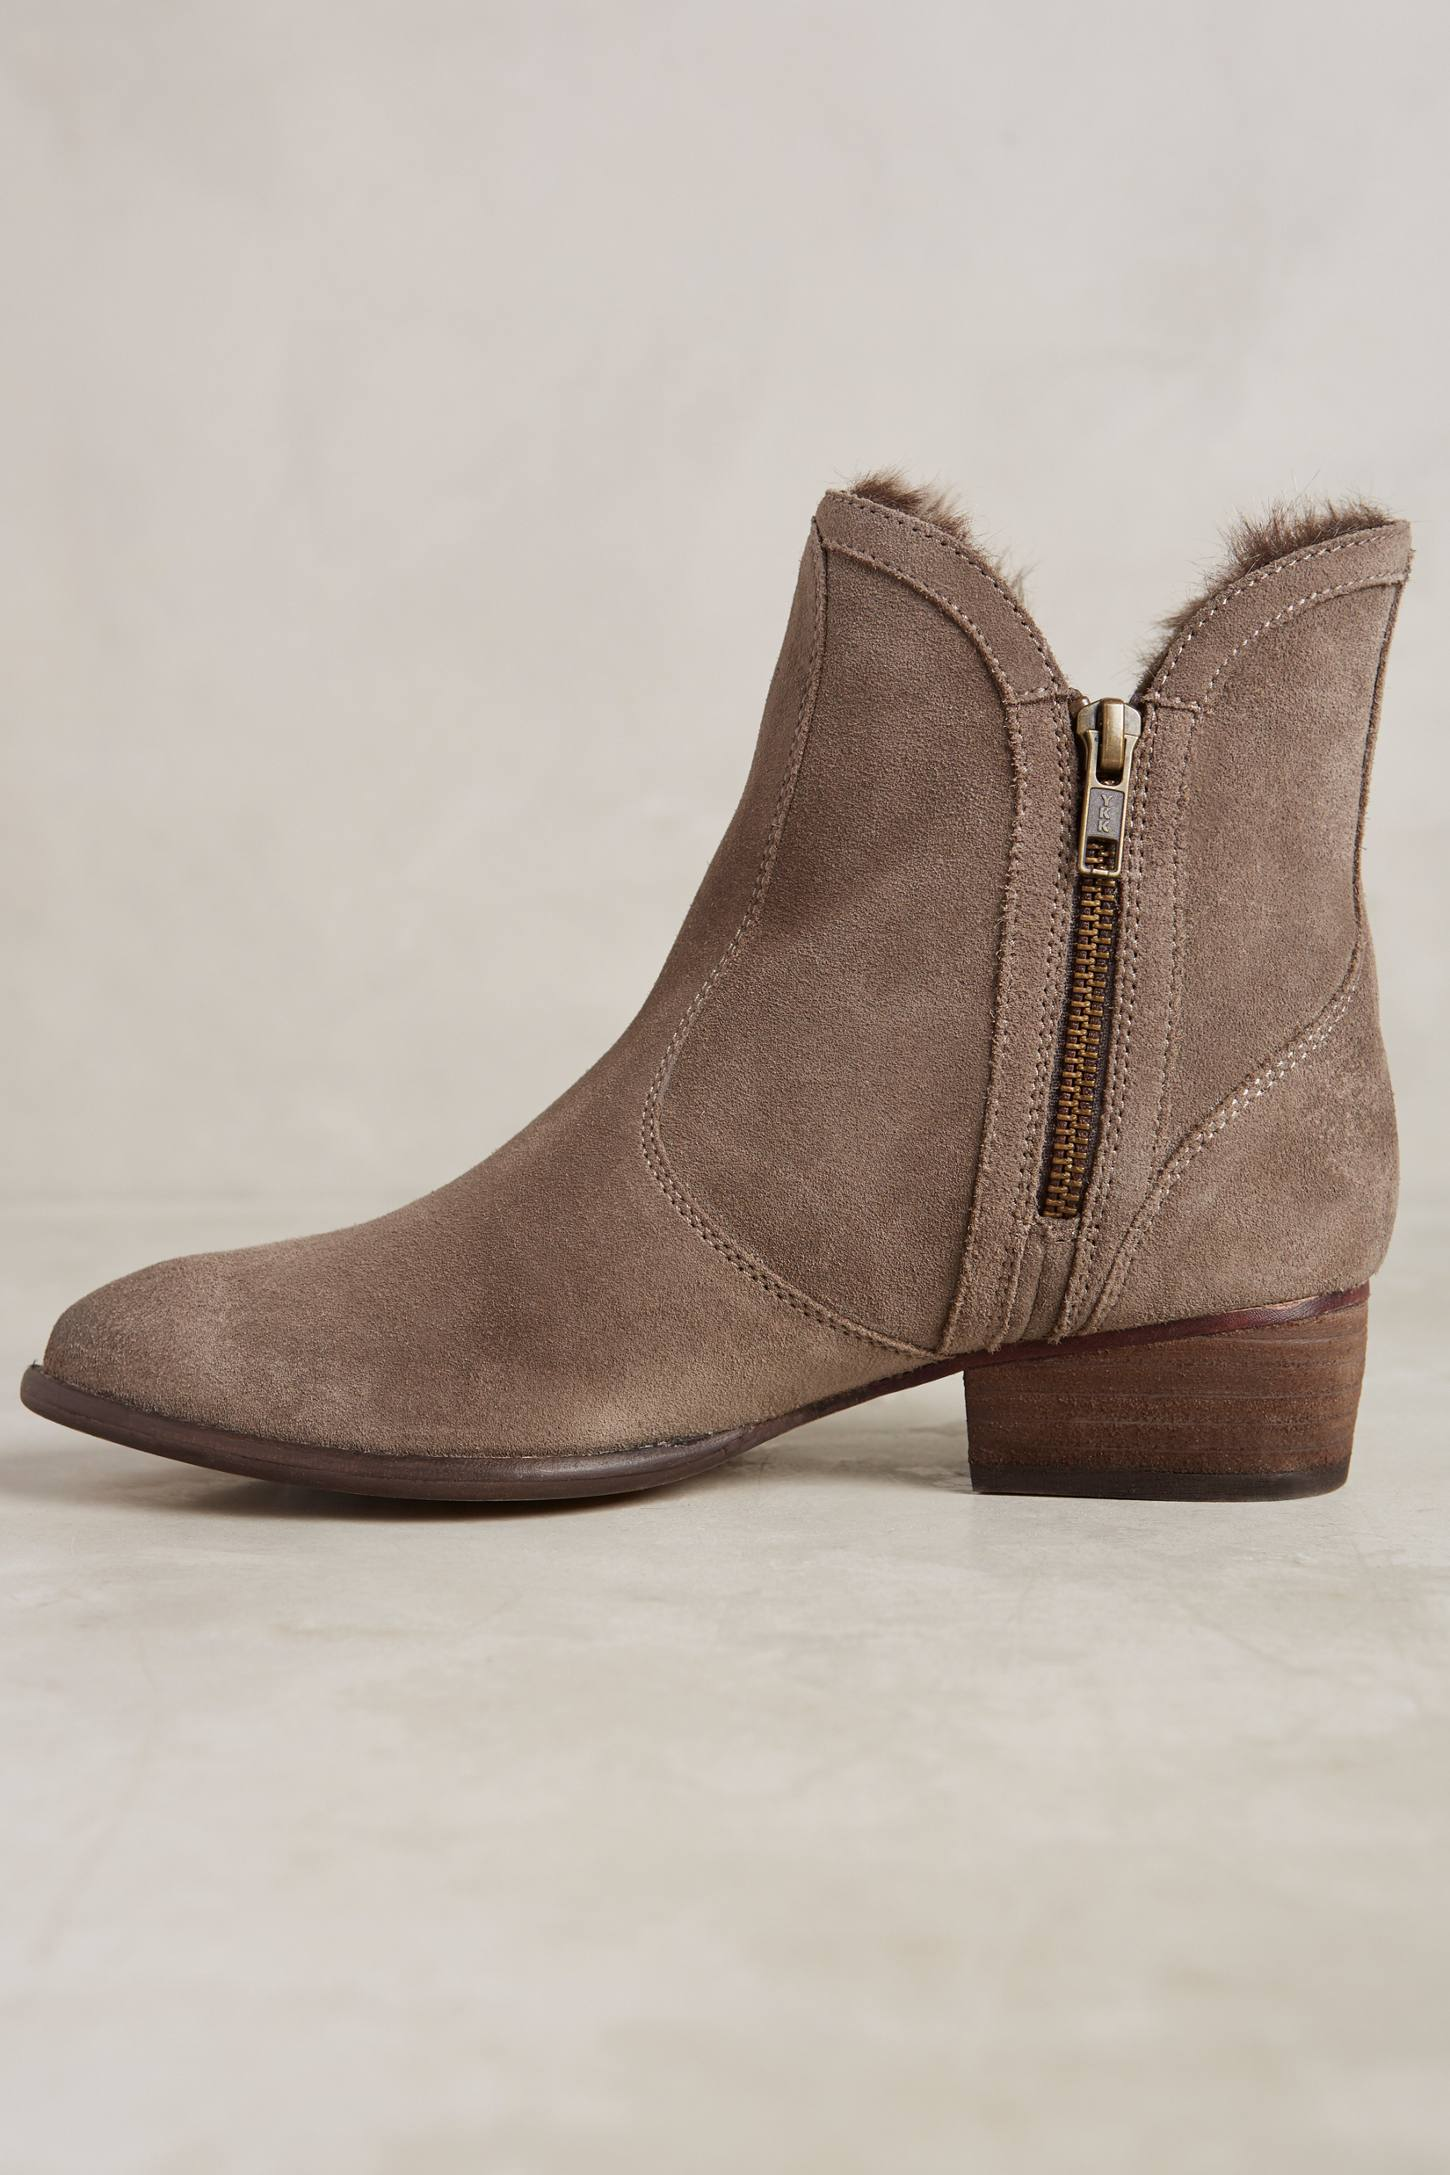 Slide View: 3: Seychelles Lucky Penny Ankle Boots